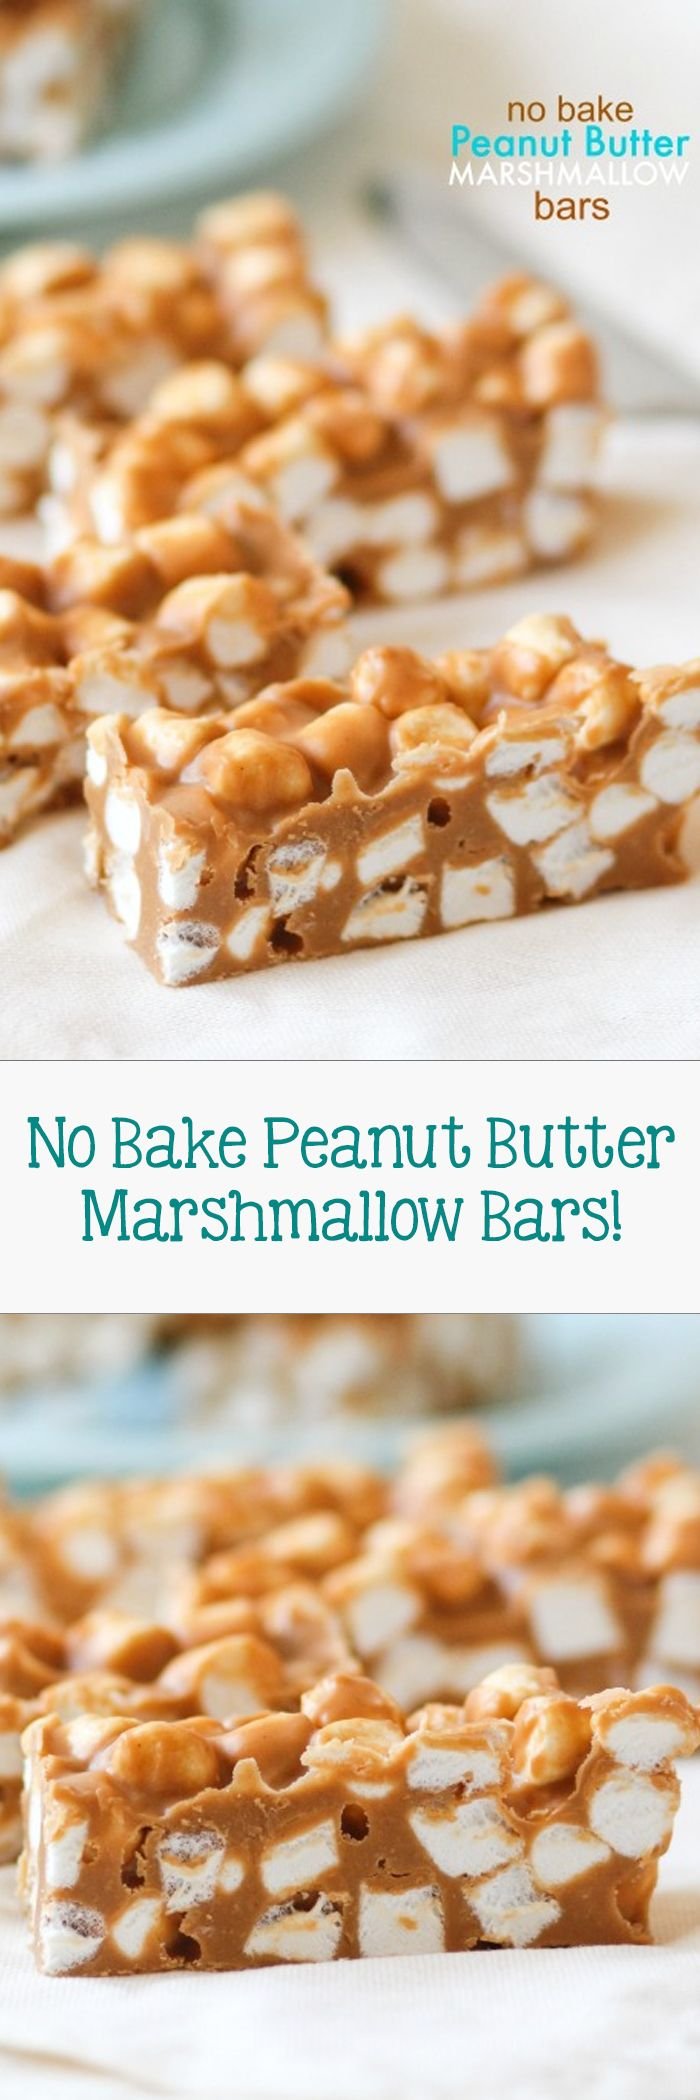 No Bake Peanut Butter Marshmallow Bars -- they are so pretty when you cut them into squares and see all those pretty marshmallows inside!